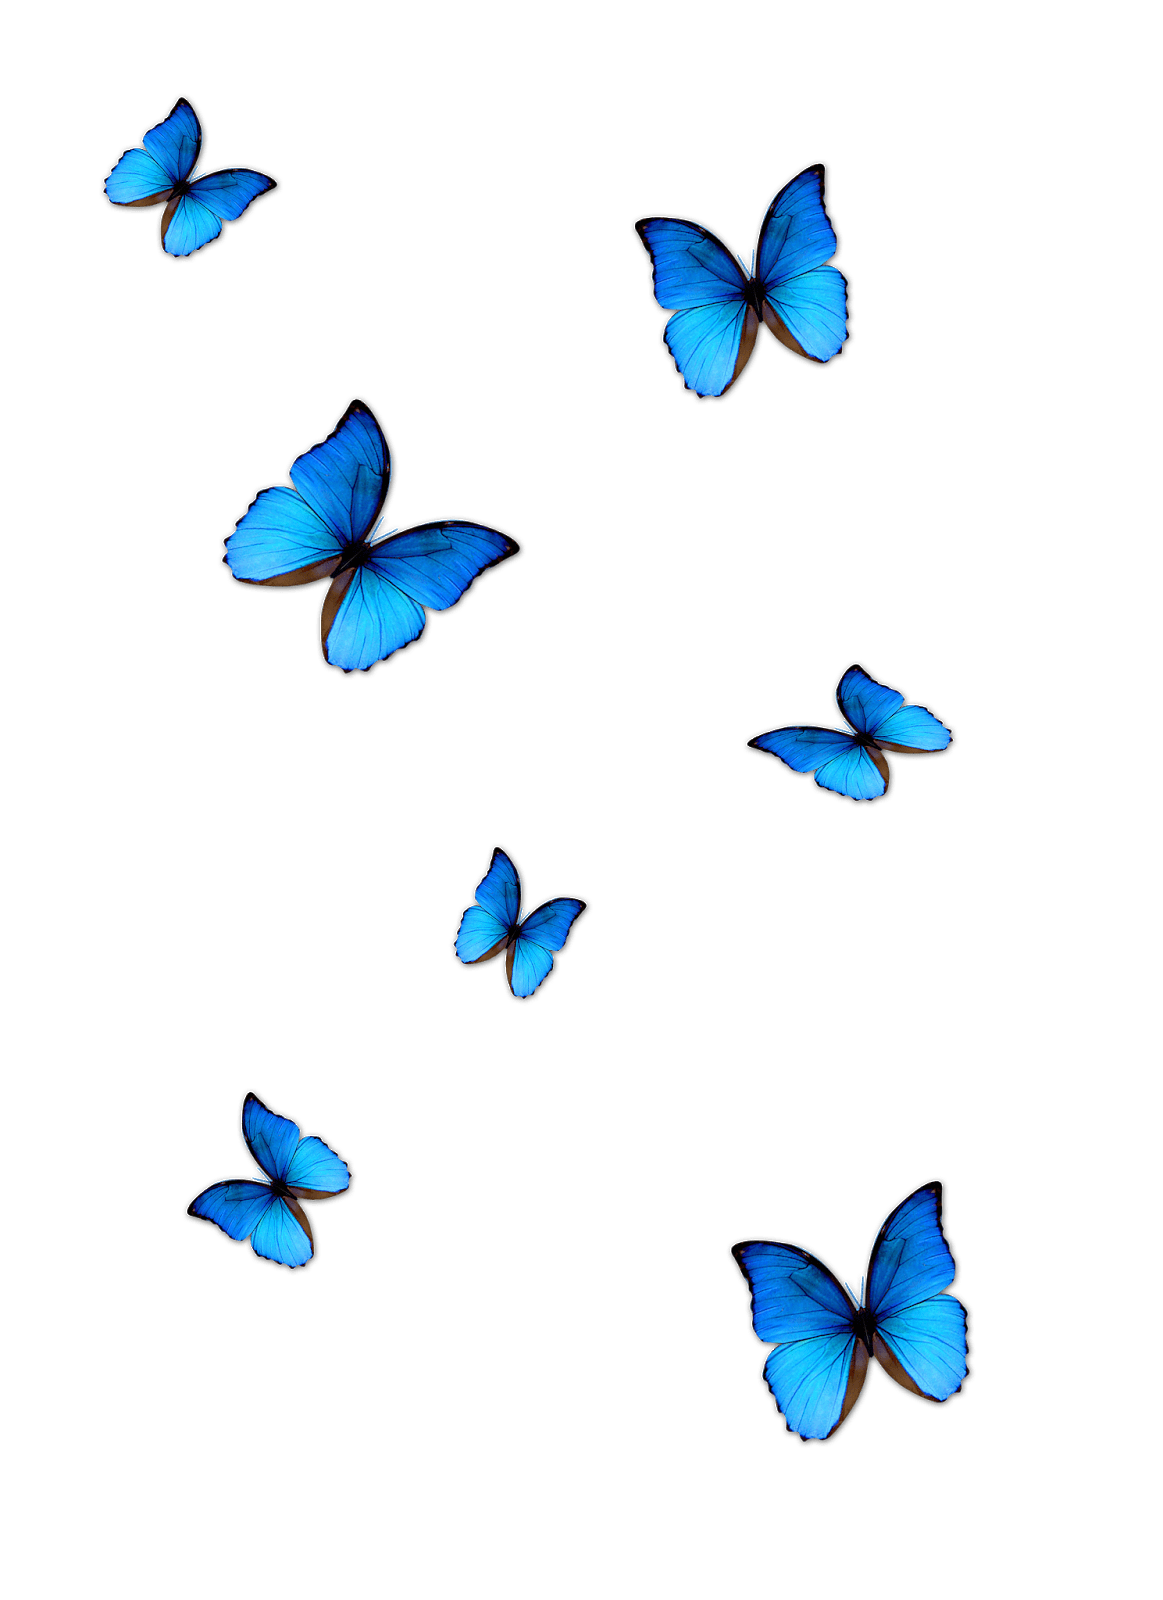 Png photo editor download. Lightroom butterfly effect editing